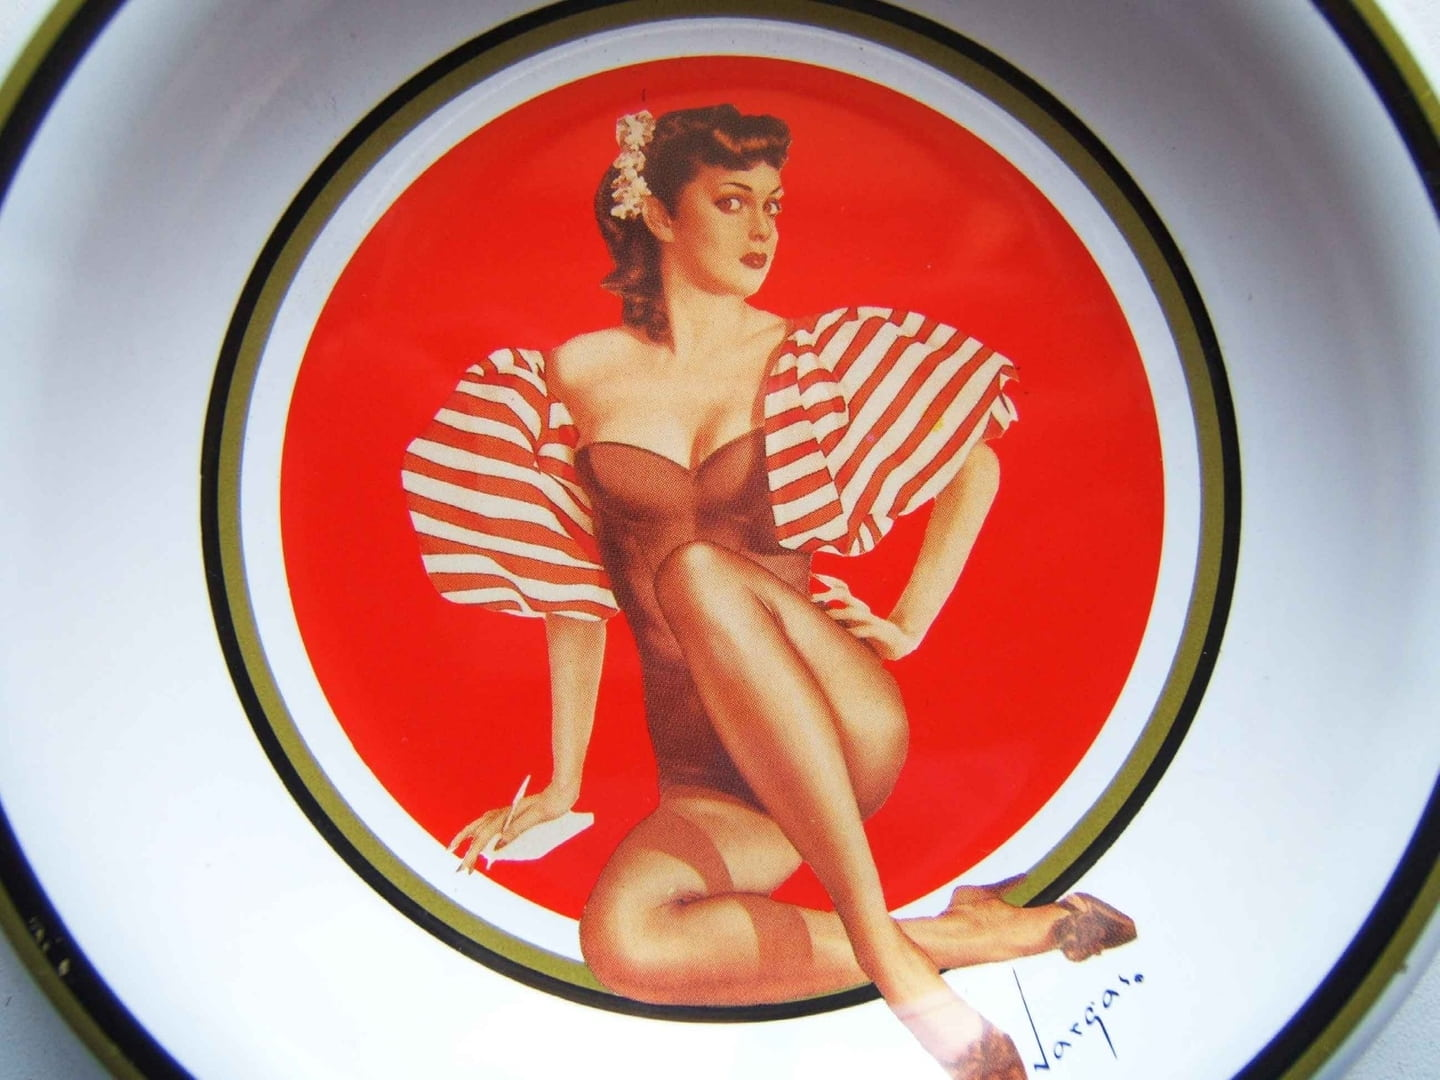 Cendrier vide poches pin up vargas bon de la defense - Deco annee 50 americaine ...